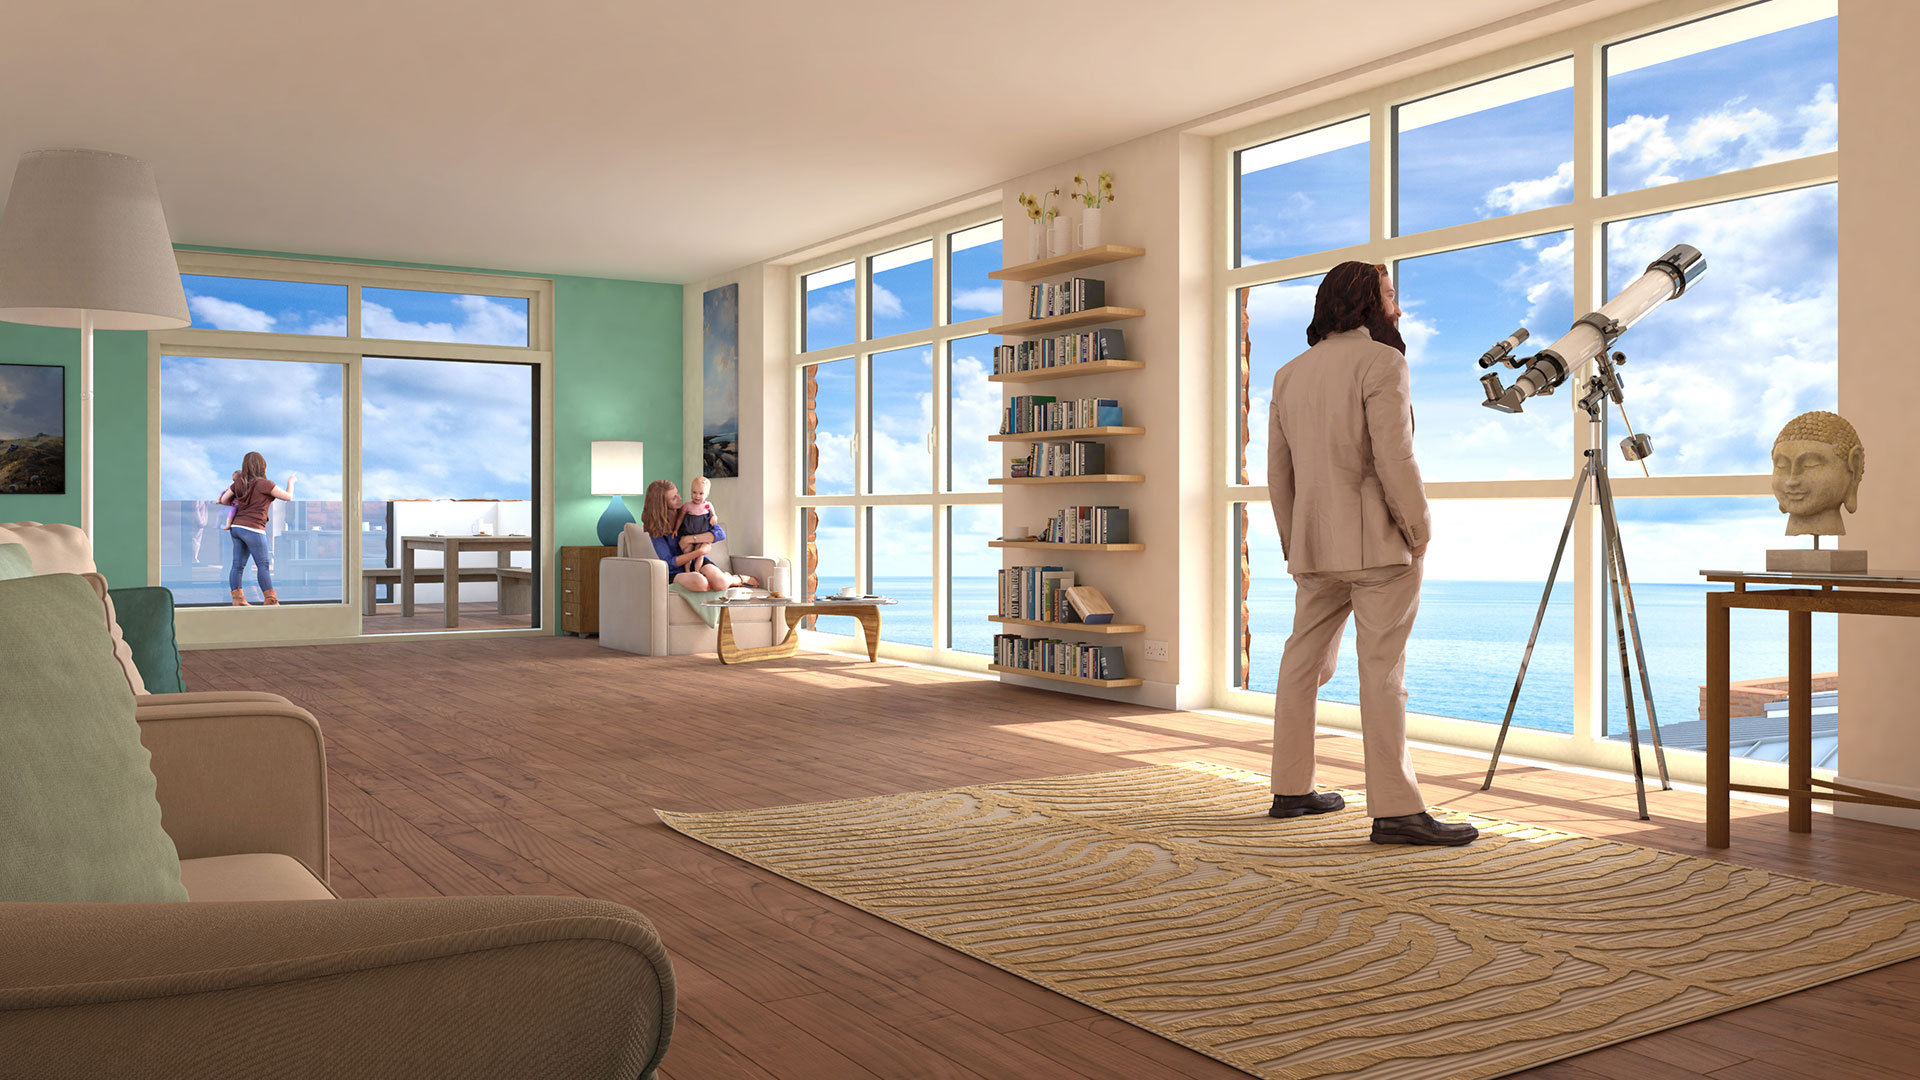 Architectural CGI visualisation image living room view